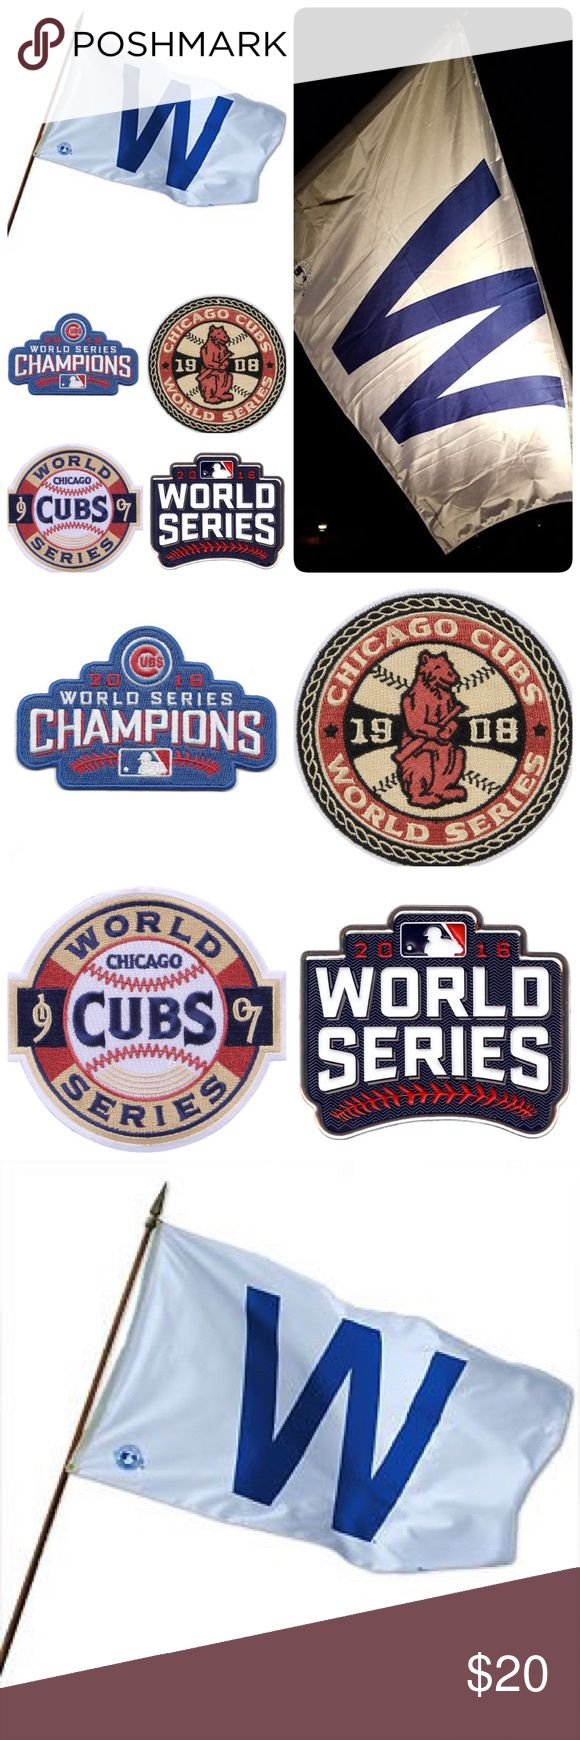 """Chicago Cubs W House Flag & World Series Patch Set Looking for the perfect Christmas gift for that huge Cubs fan? Look no further! Get them this """"W"""" Win House Flag and World Series Patch Collection! Flag is 3ft by 5ft, made of 100% polyester and attaches to any flagpole. The Patch Collection features fully embroidered patches celebrating the Cubs World Series Championships in 1907, 1908, and 2016! I have tons of these available and my prices are dirt cheap. Please check my other listings for…"""